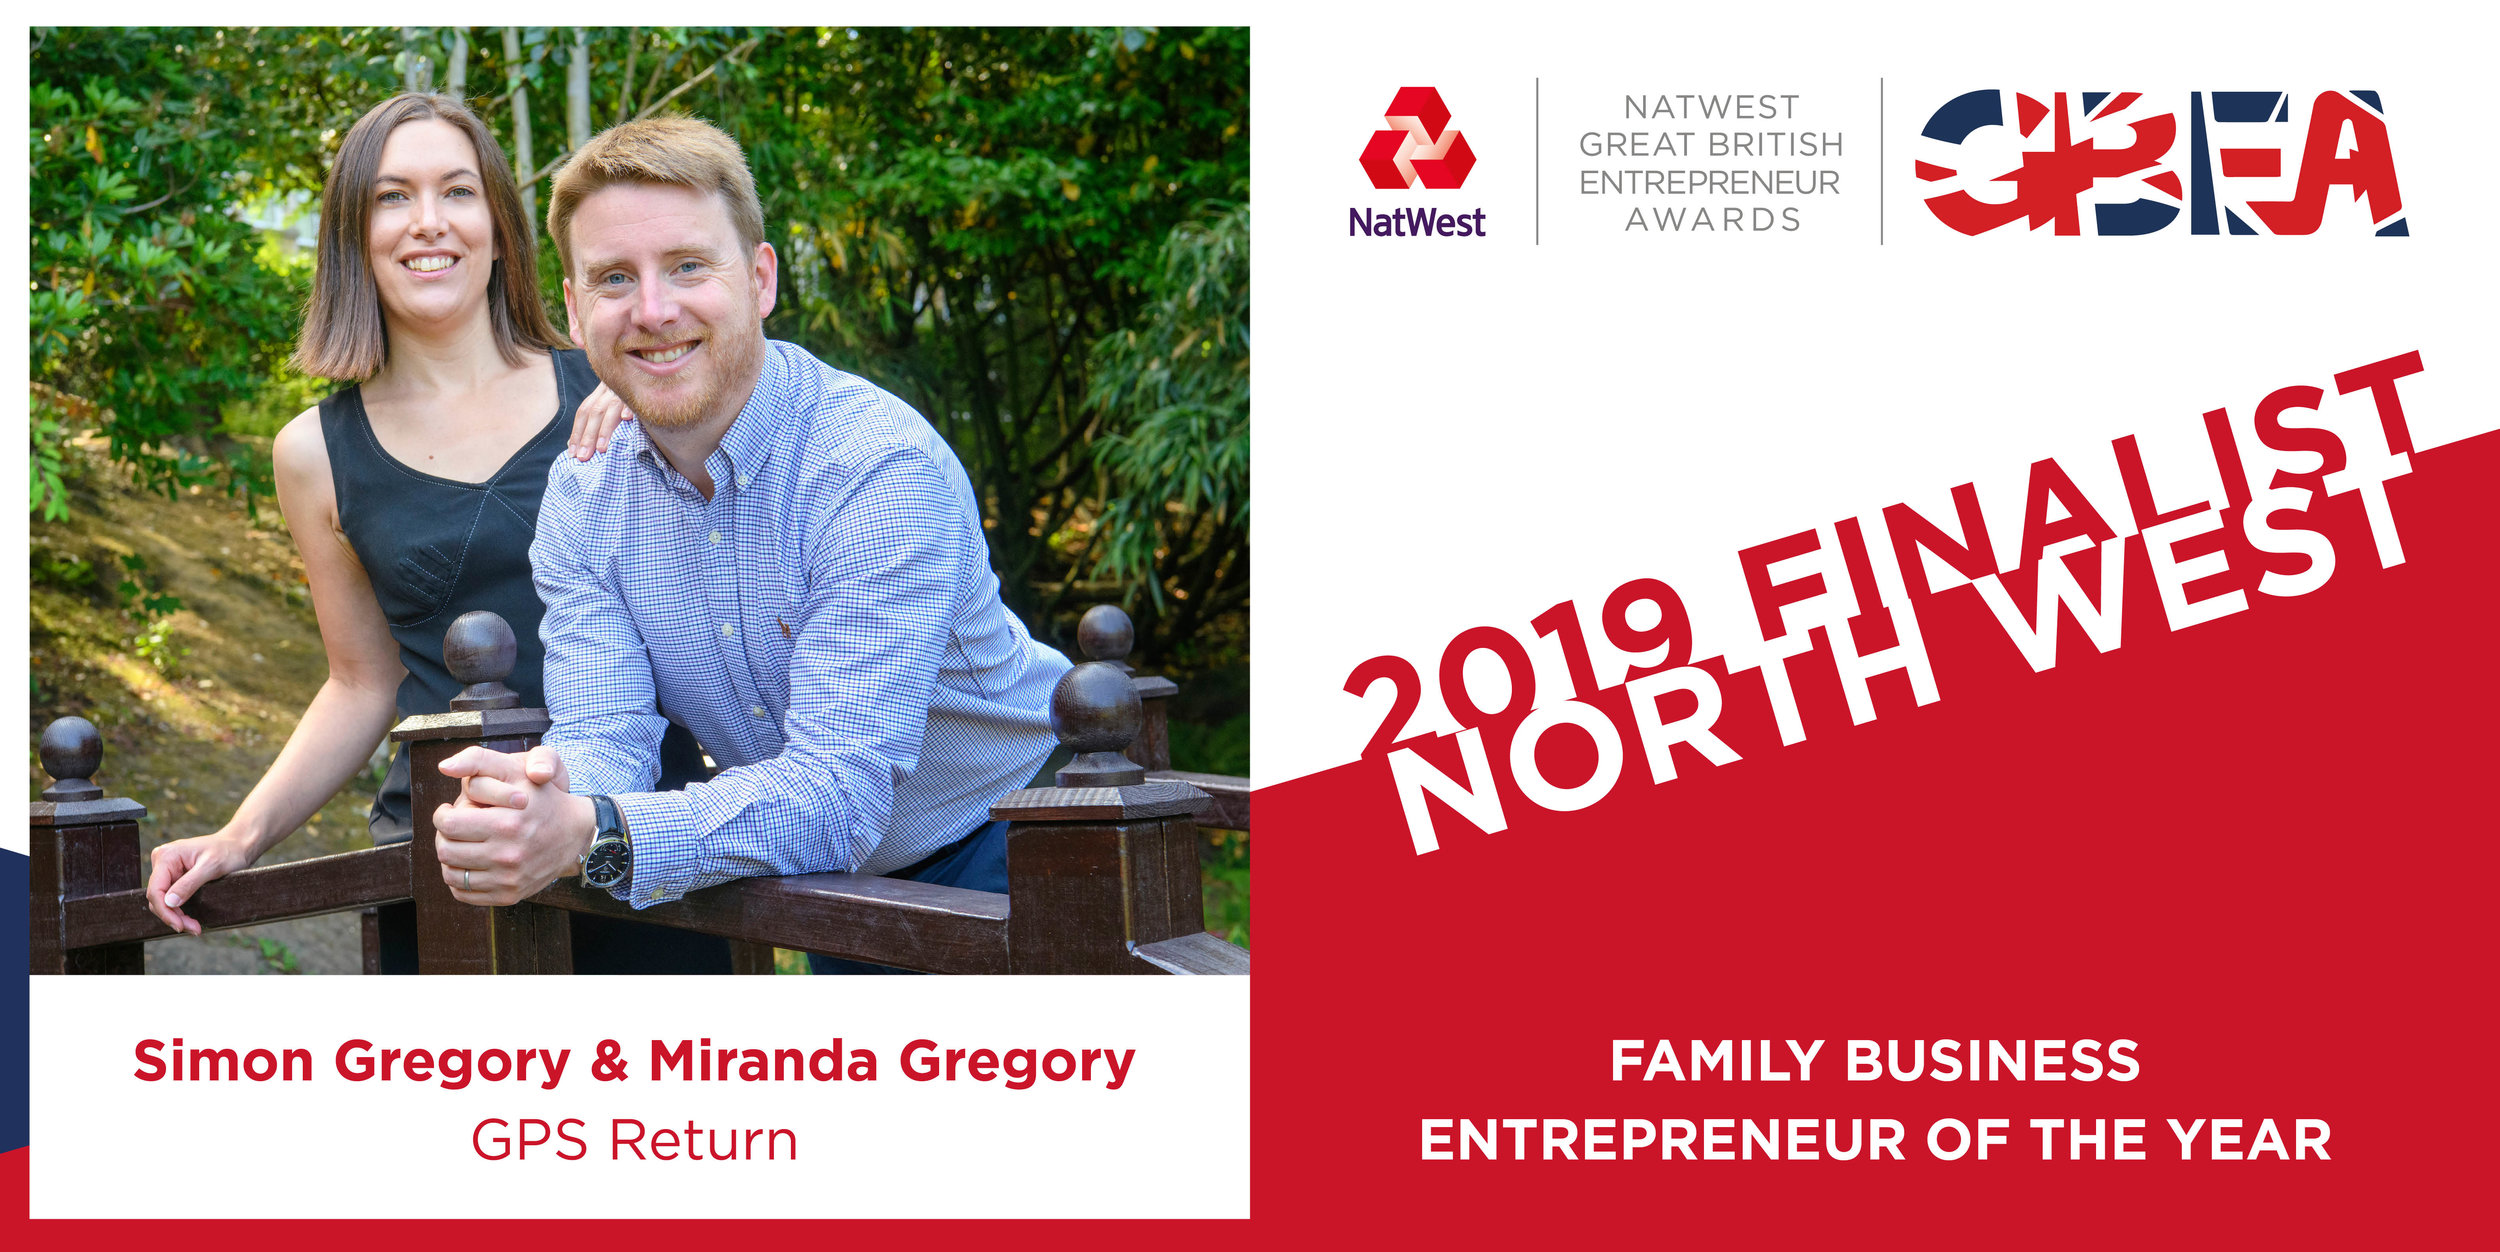 GBEA Family Business Entrepreneur of the year 2019